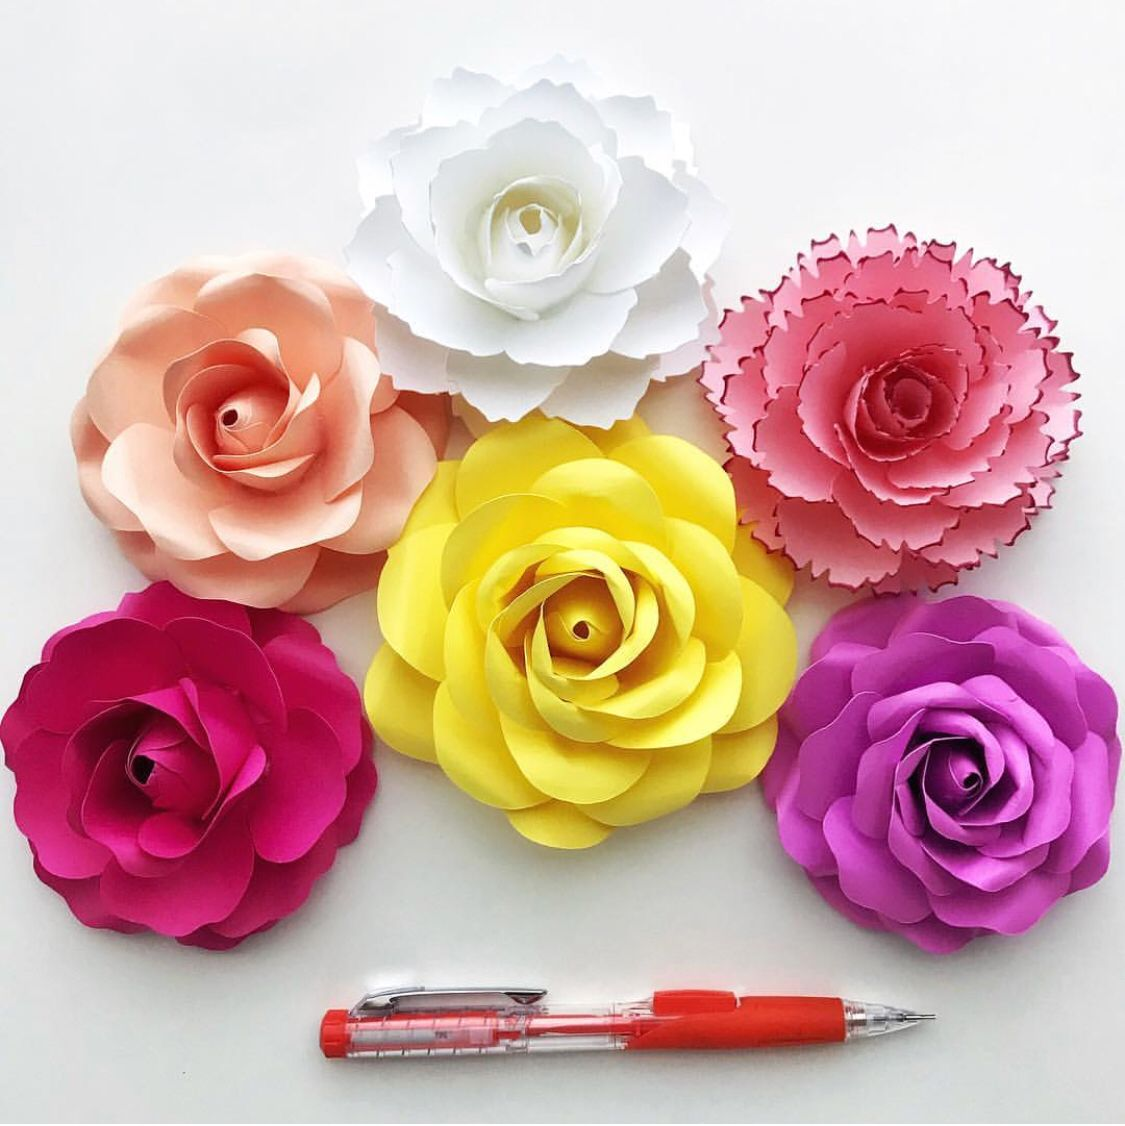 Tiny Roses New Paper Flower Templates Available In The Crafty